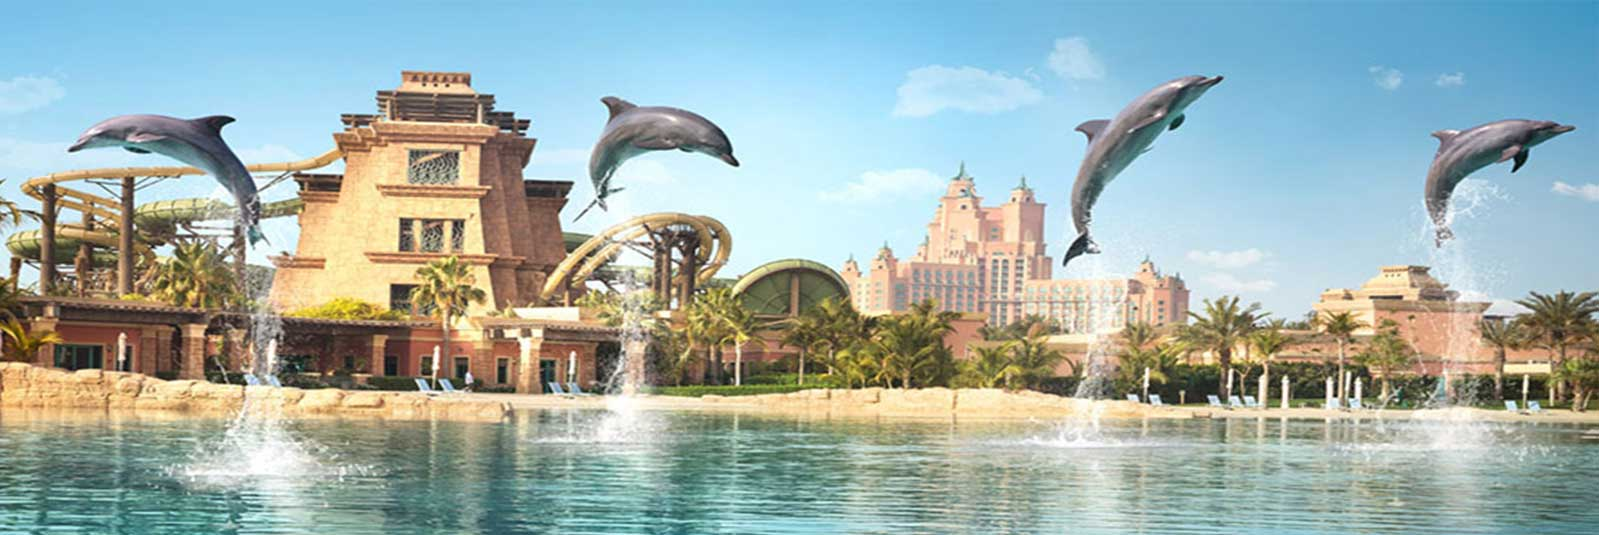 Aquaventure-Waterpark-Dolphin-Bay.jpg